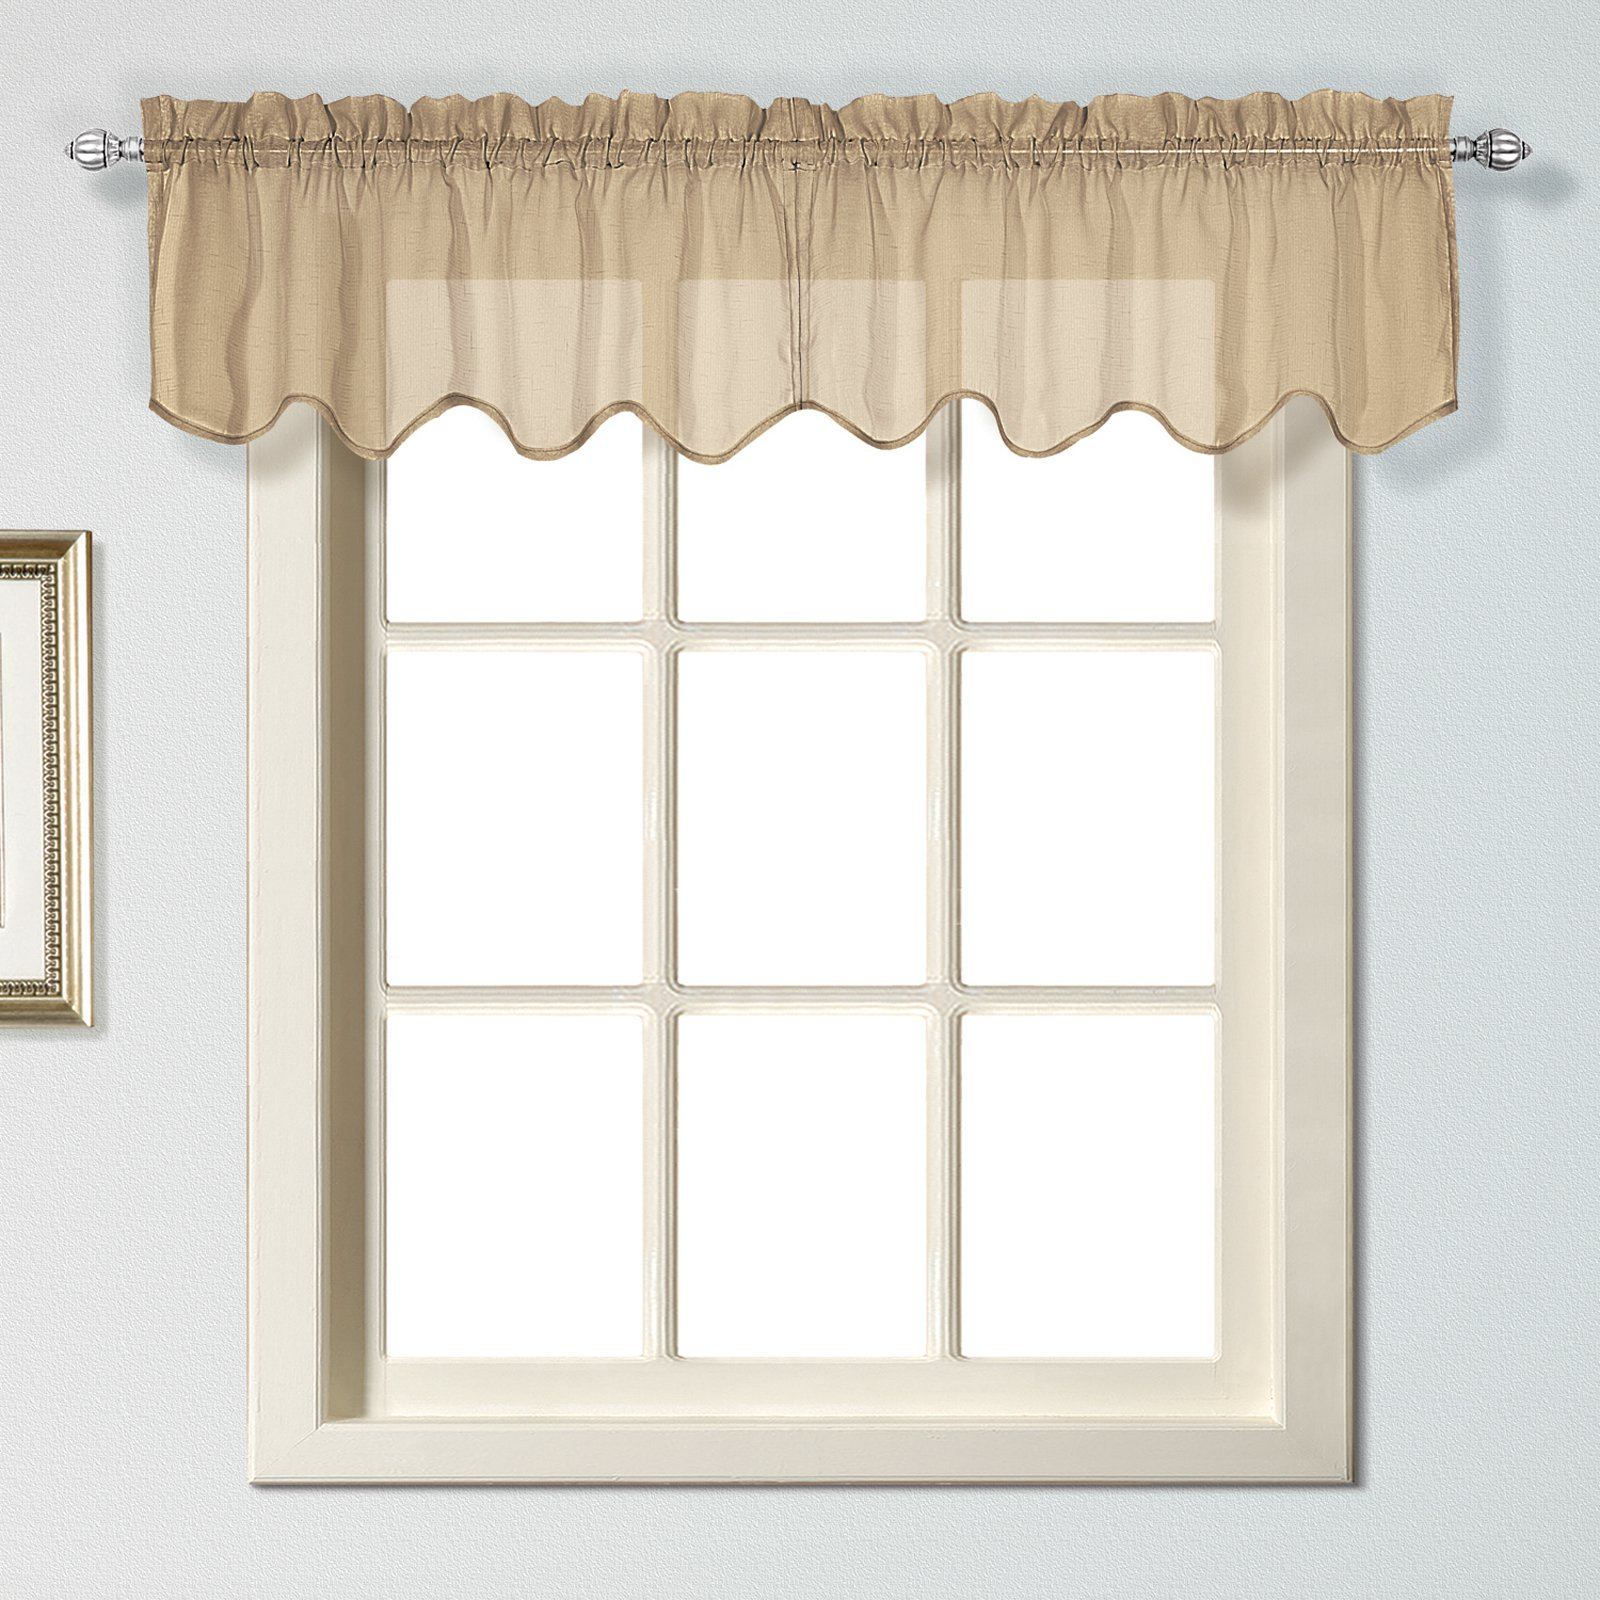 United Curtain Charleston Valance